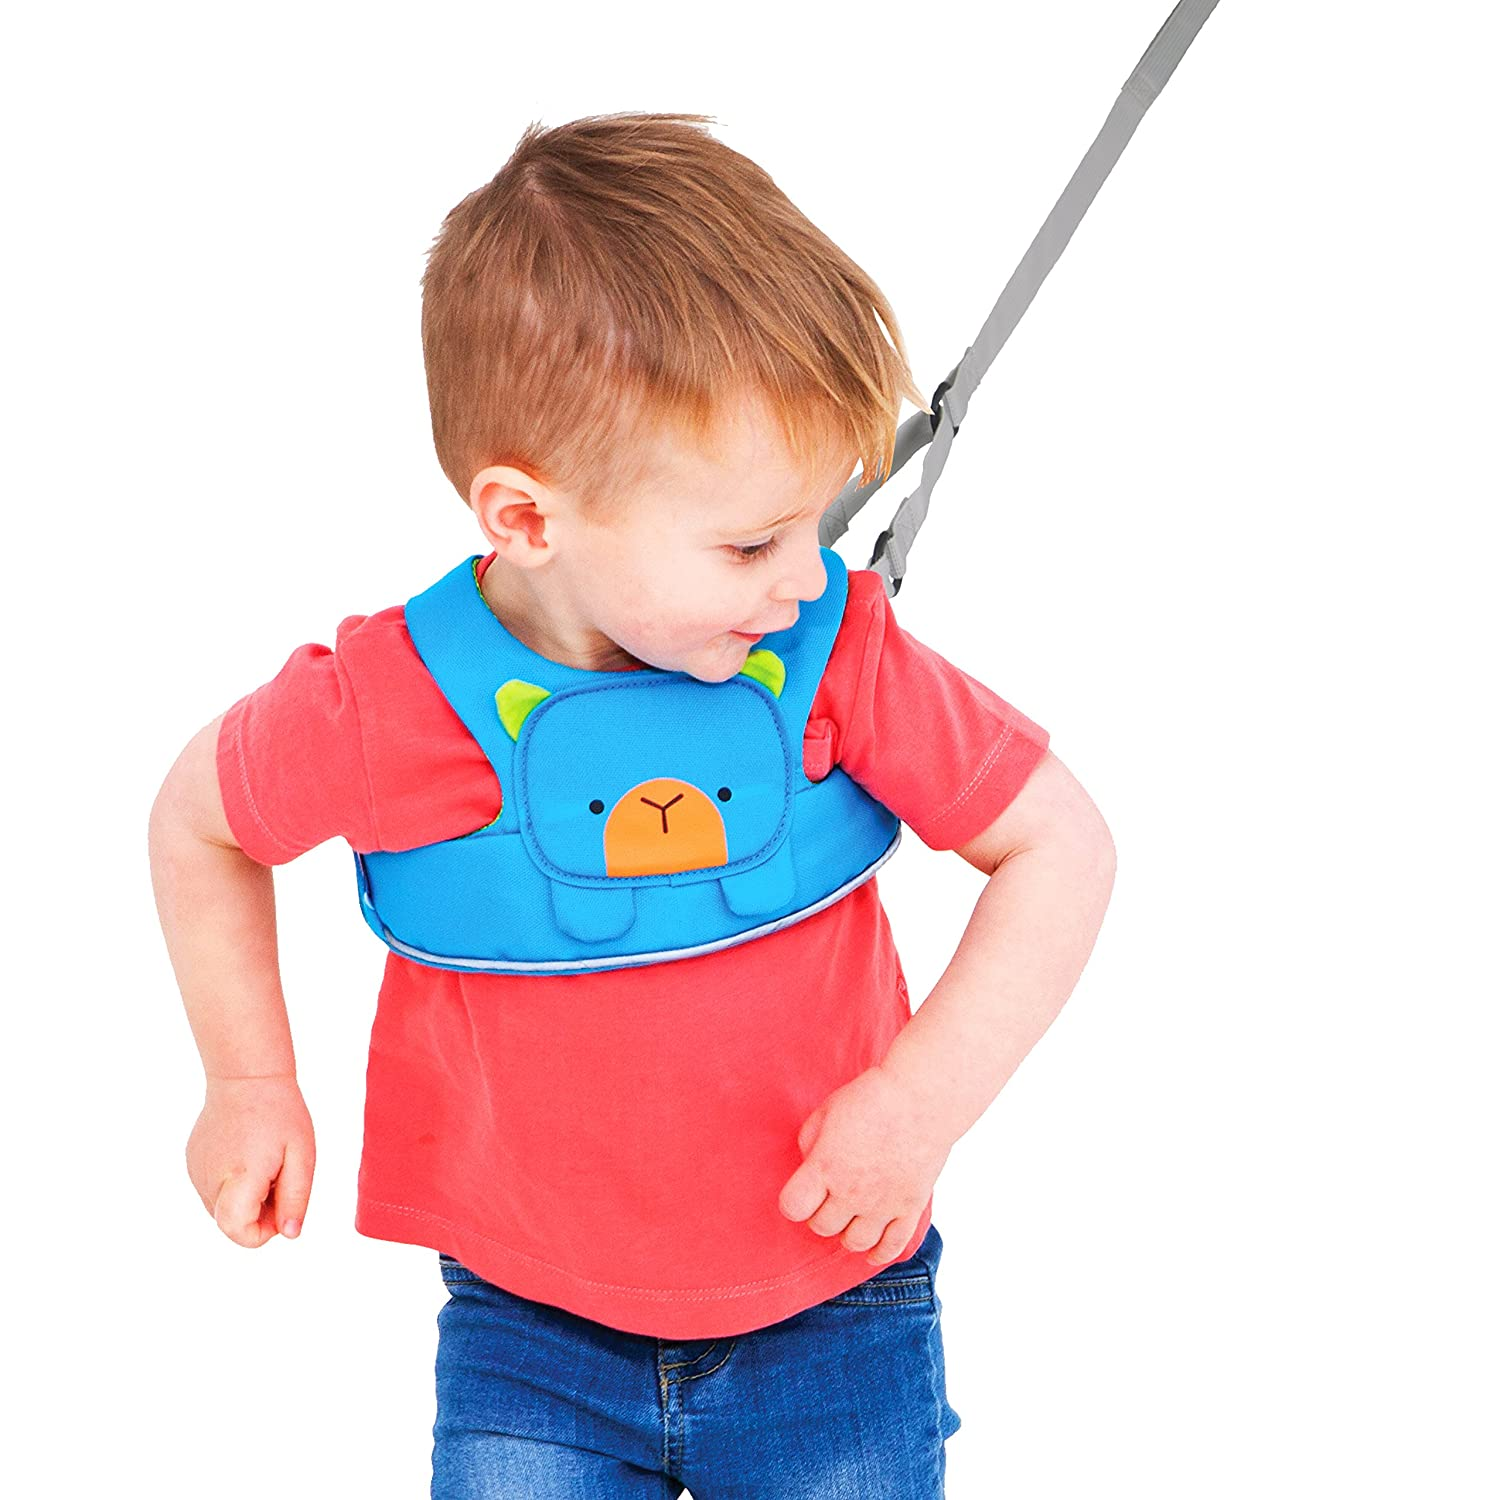 f23f5c9092ed Trunki ToddlePak - Fuss Free Toddler Walking Reins   Kids Safety Harness -  Bert (Blue)  Amazon.co.uk  Luggage